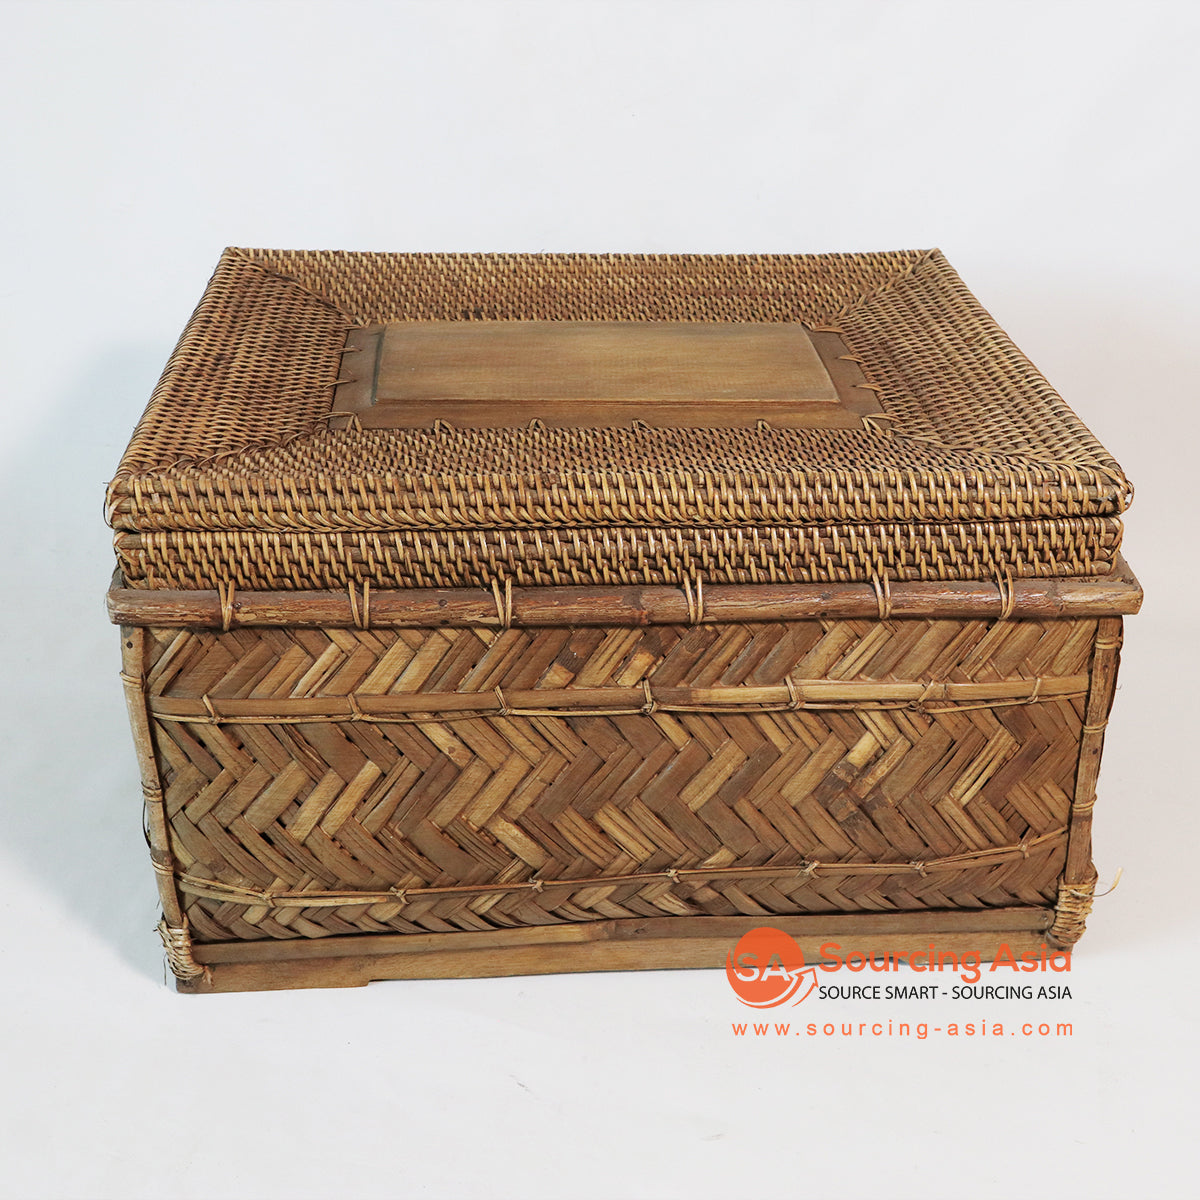 MTIC069 BAMBOO BASKET WITH RATTAN LID